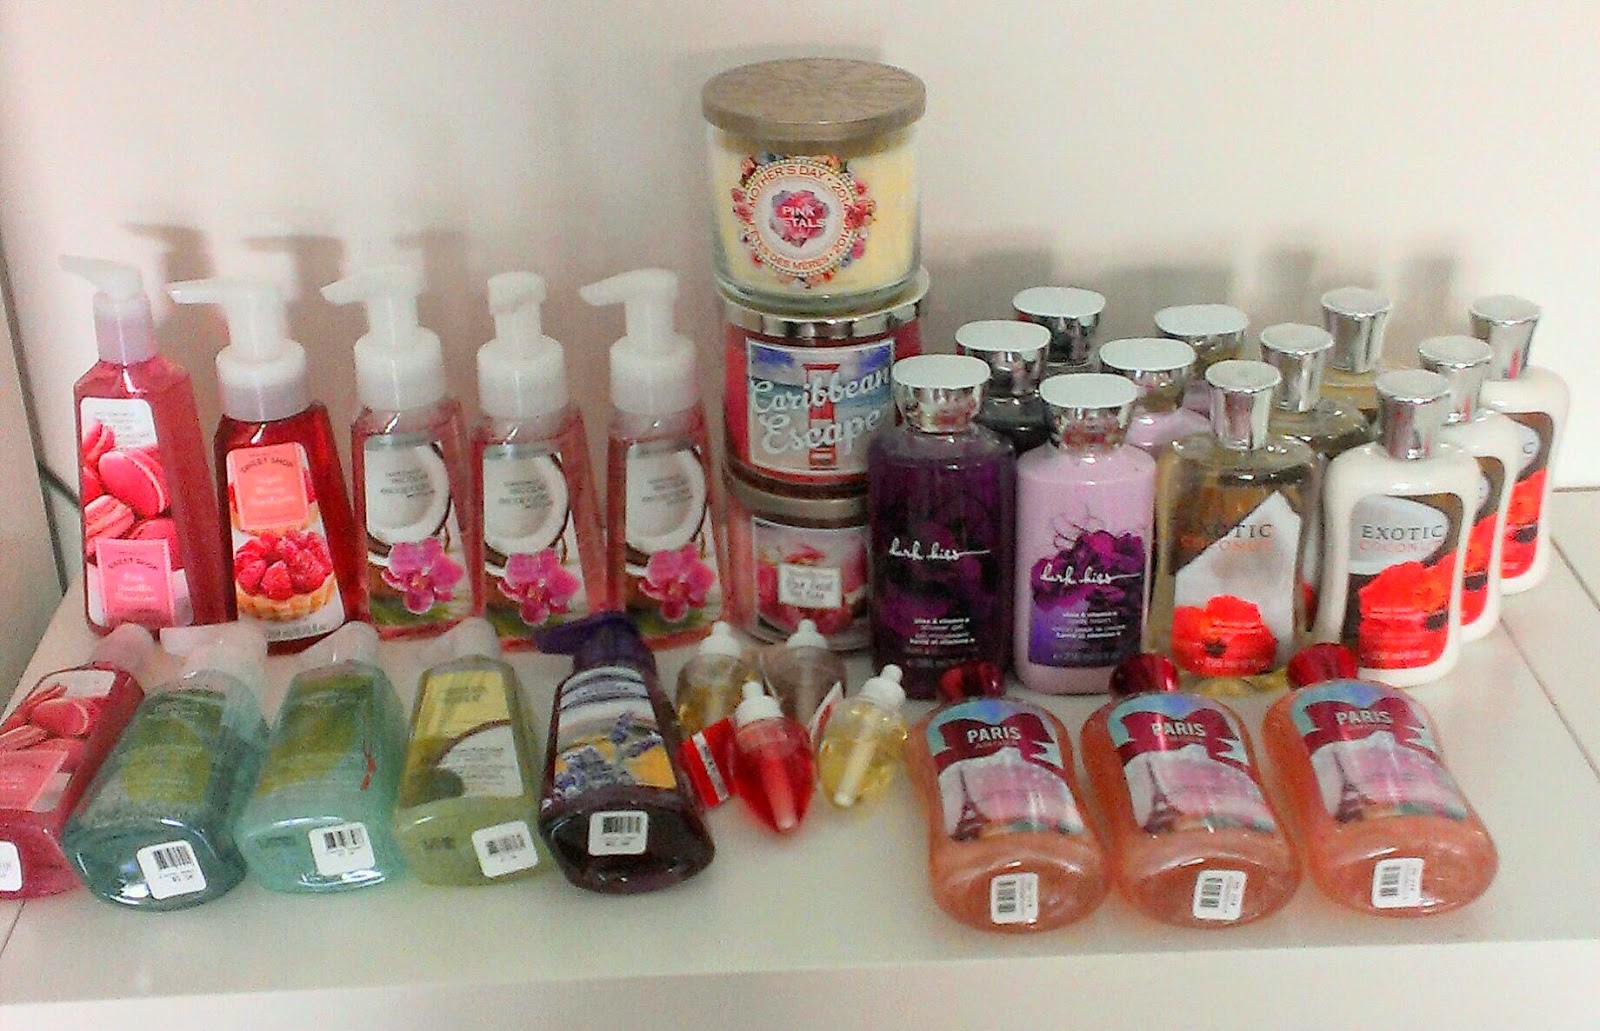 Bath and Body Works 2014 semi annual sale haul   Part 1. GlamaMama  Bath and Body Works 2014 semi annual sale haul   Part 1